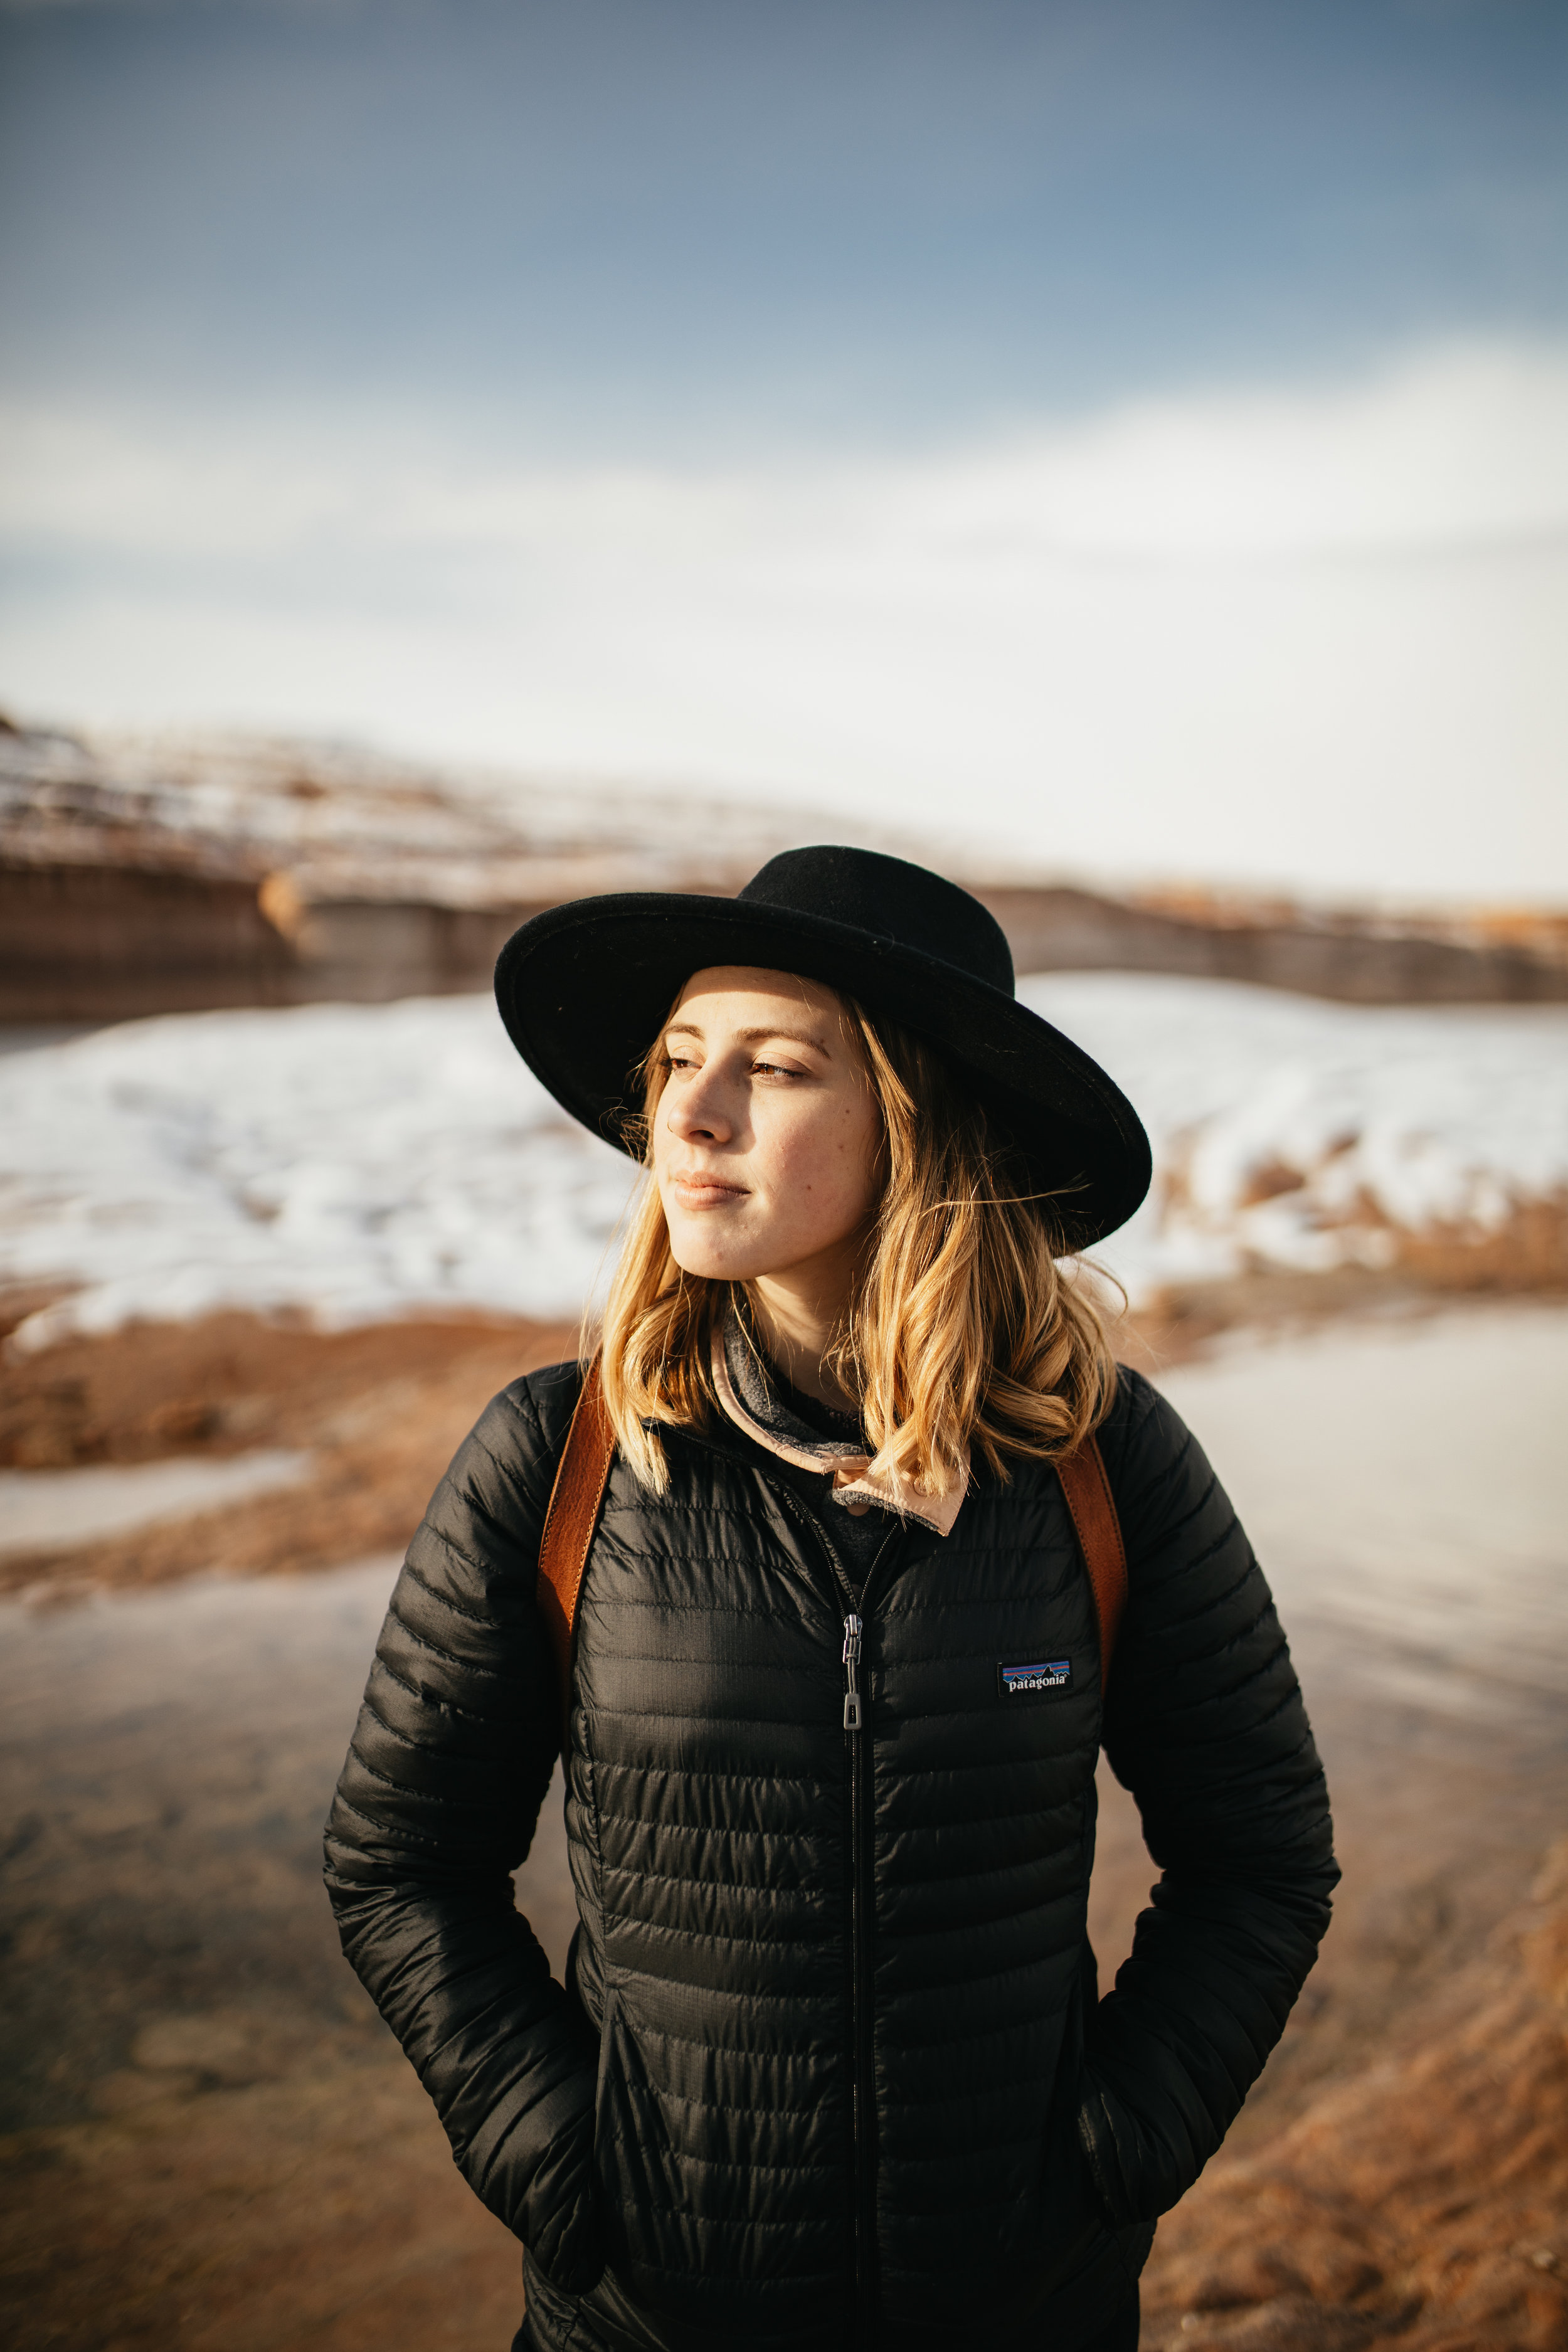 Harsh light portrait in Lake Powell